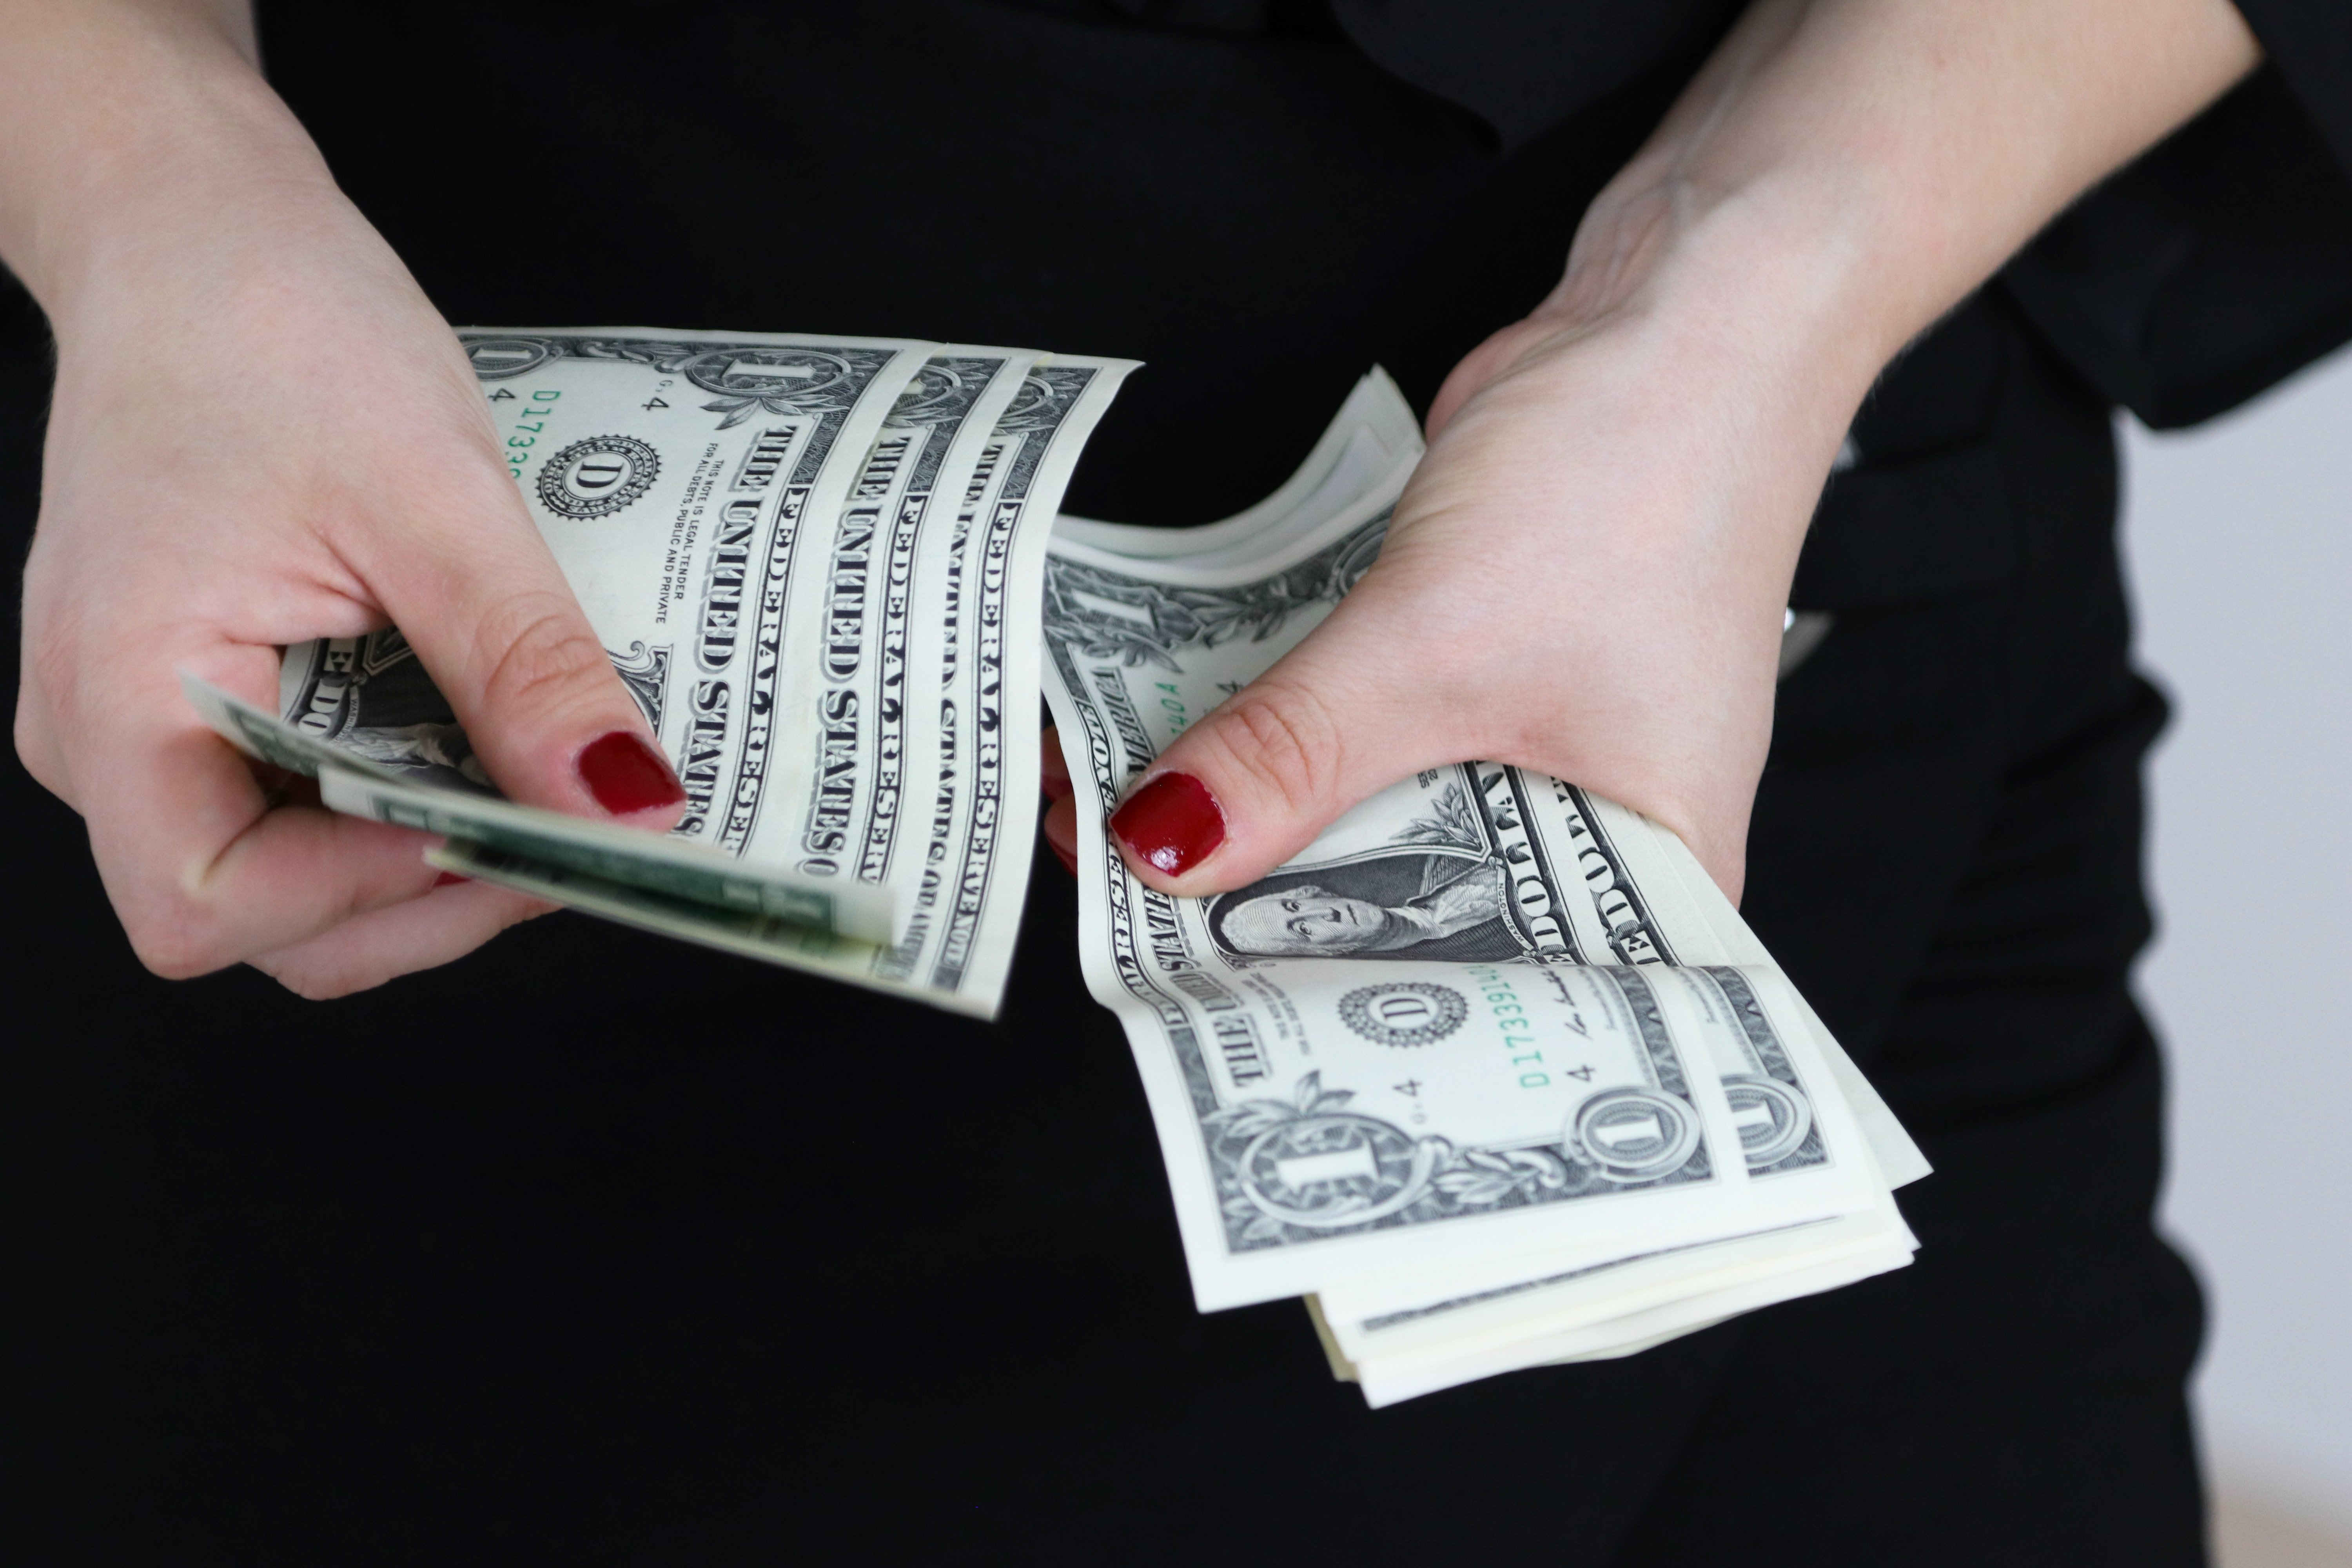 woman with red nail polish counting one dollar bills